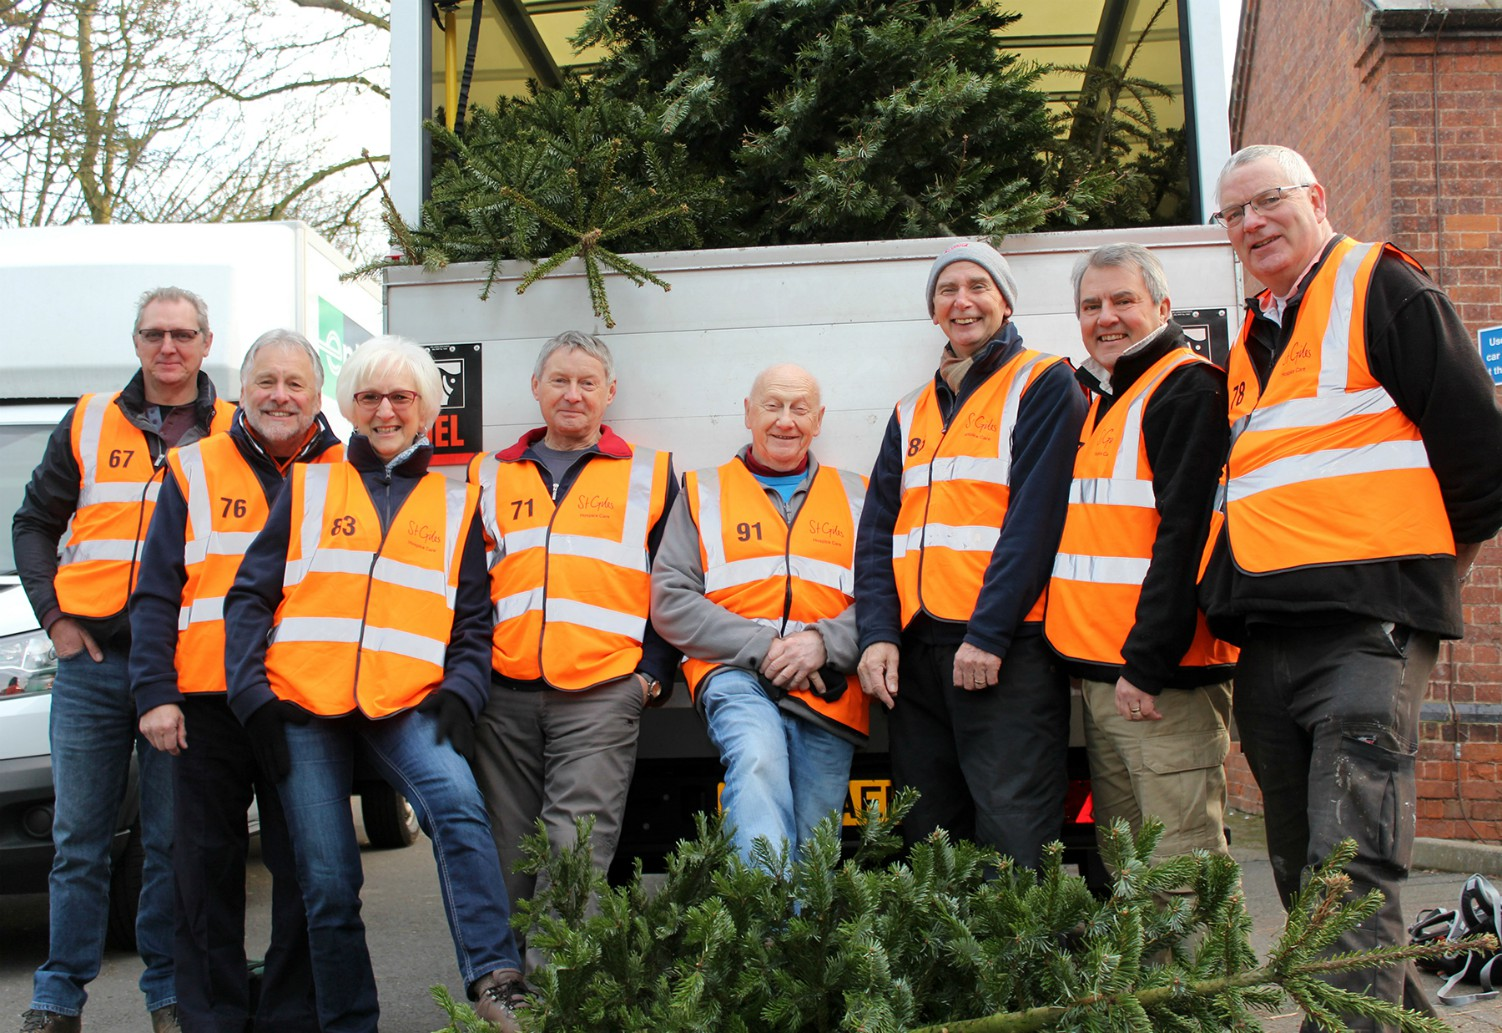 Log your support now and help St Giles Hospice break Christmas Treecycle record